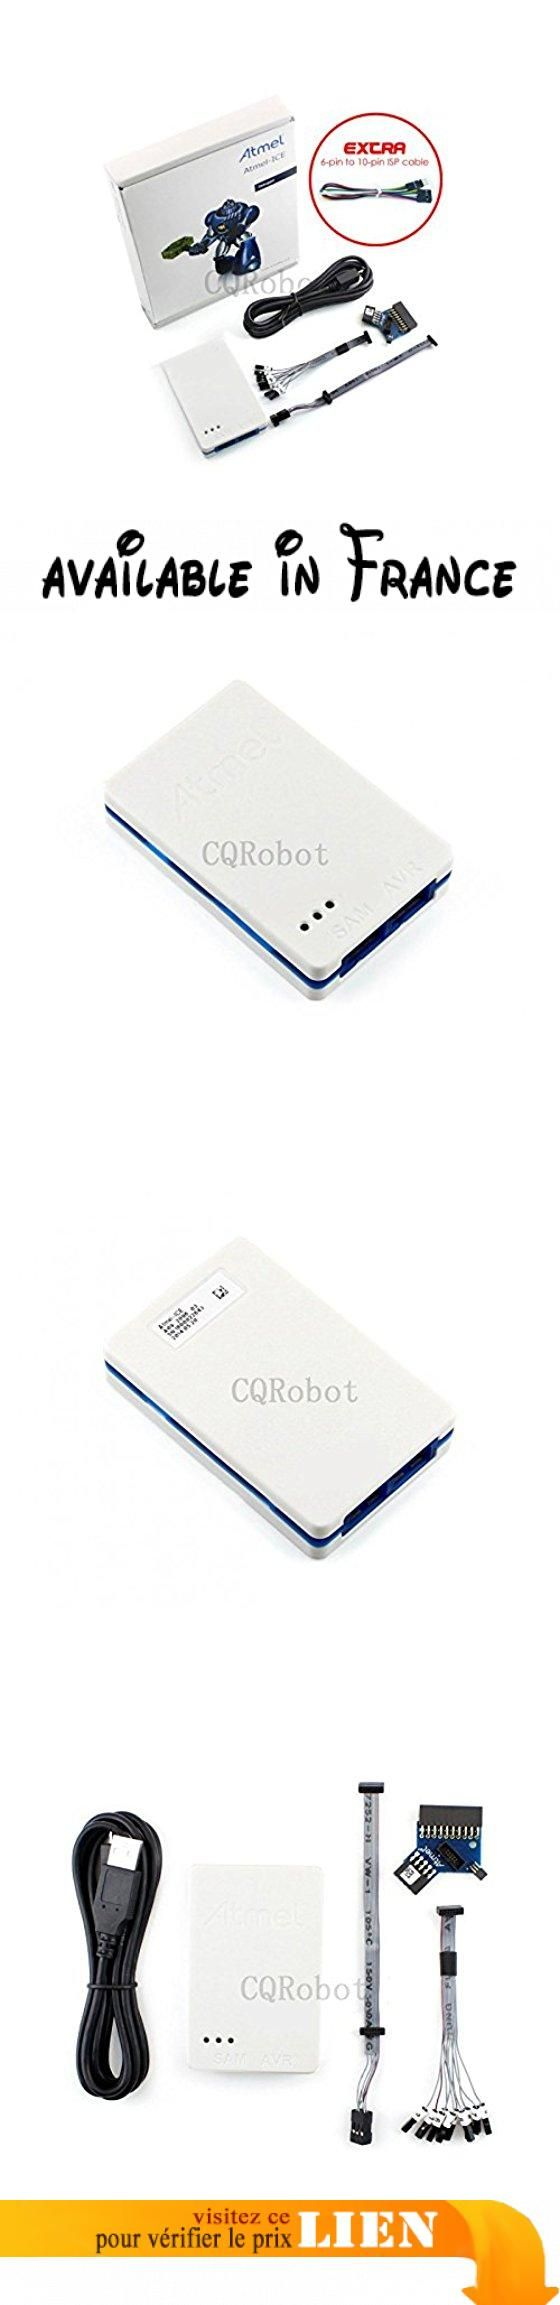 CQRobot Atmel-ICE, a Powerful Development Tool for Debugging and Programming Atmel Arm Cortex-M Based Atmel SAM and AVR Microcontrollers With On-Chip Debug Capability.. Powerful development tool for debugging and programming Atmel SAM and AVR microcontrollers.. Atmel-ICE is a powerful development tool for debugging and programming Atmel ARM? Cortex?-M based Atmel SAM and AVR? microcontrollers with on-chip debug capability.. Supports JTAG, SWD, PDI, TPI, aWire, SPI and debugWIRE